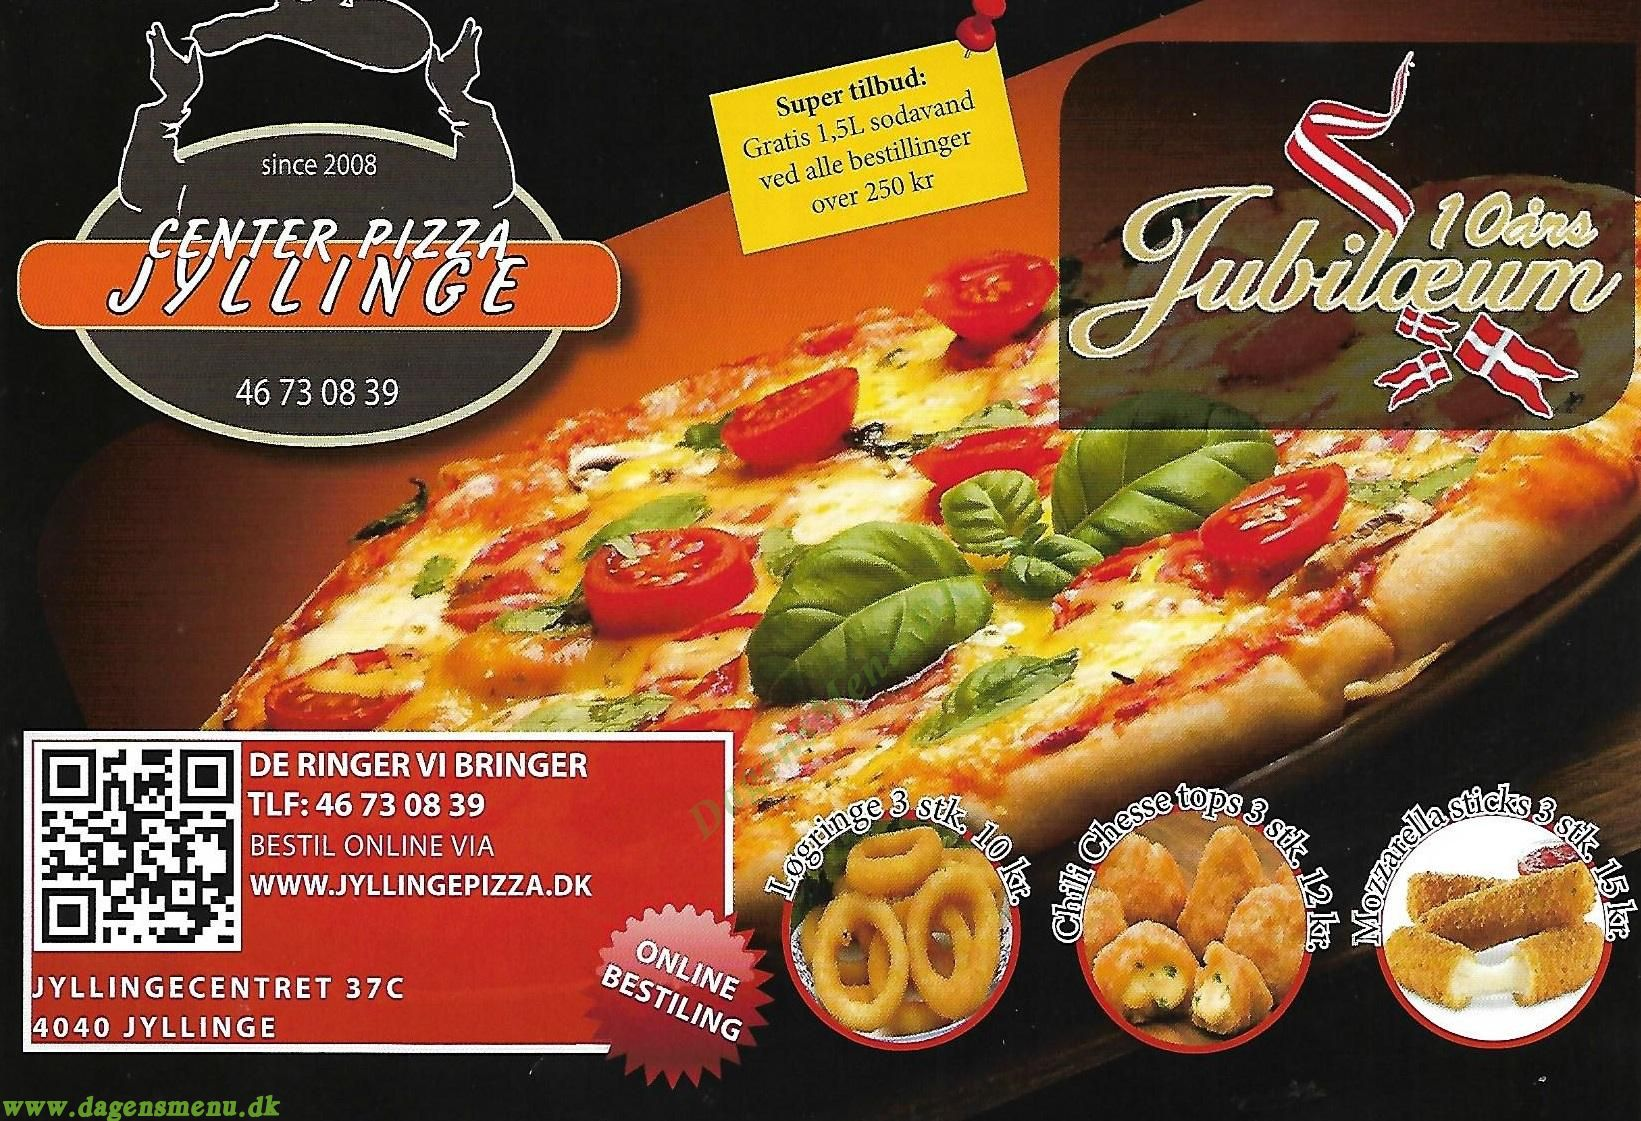 Jyllinge Center Pizza - Menukort